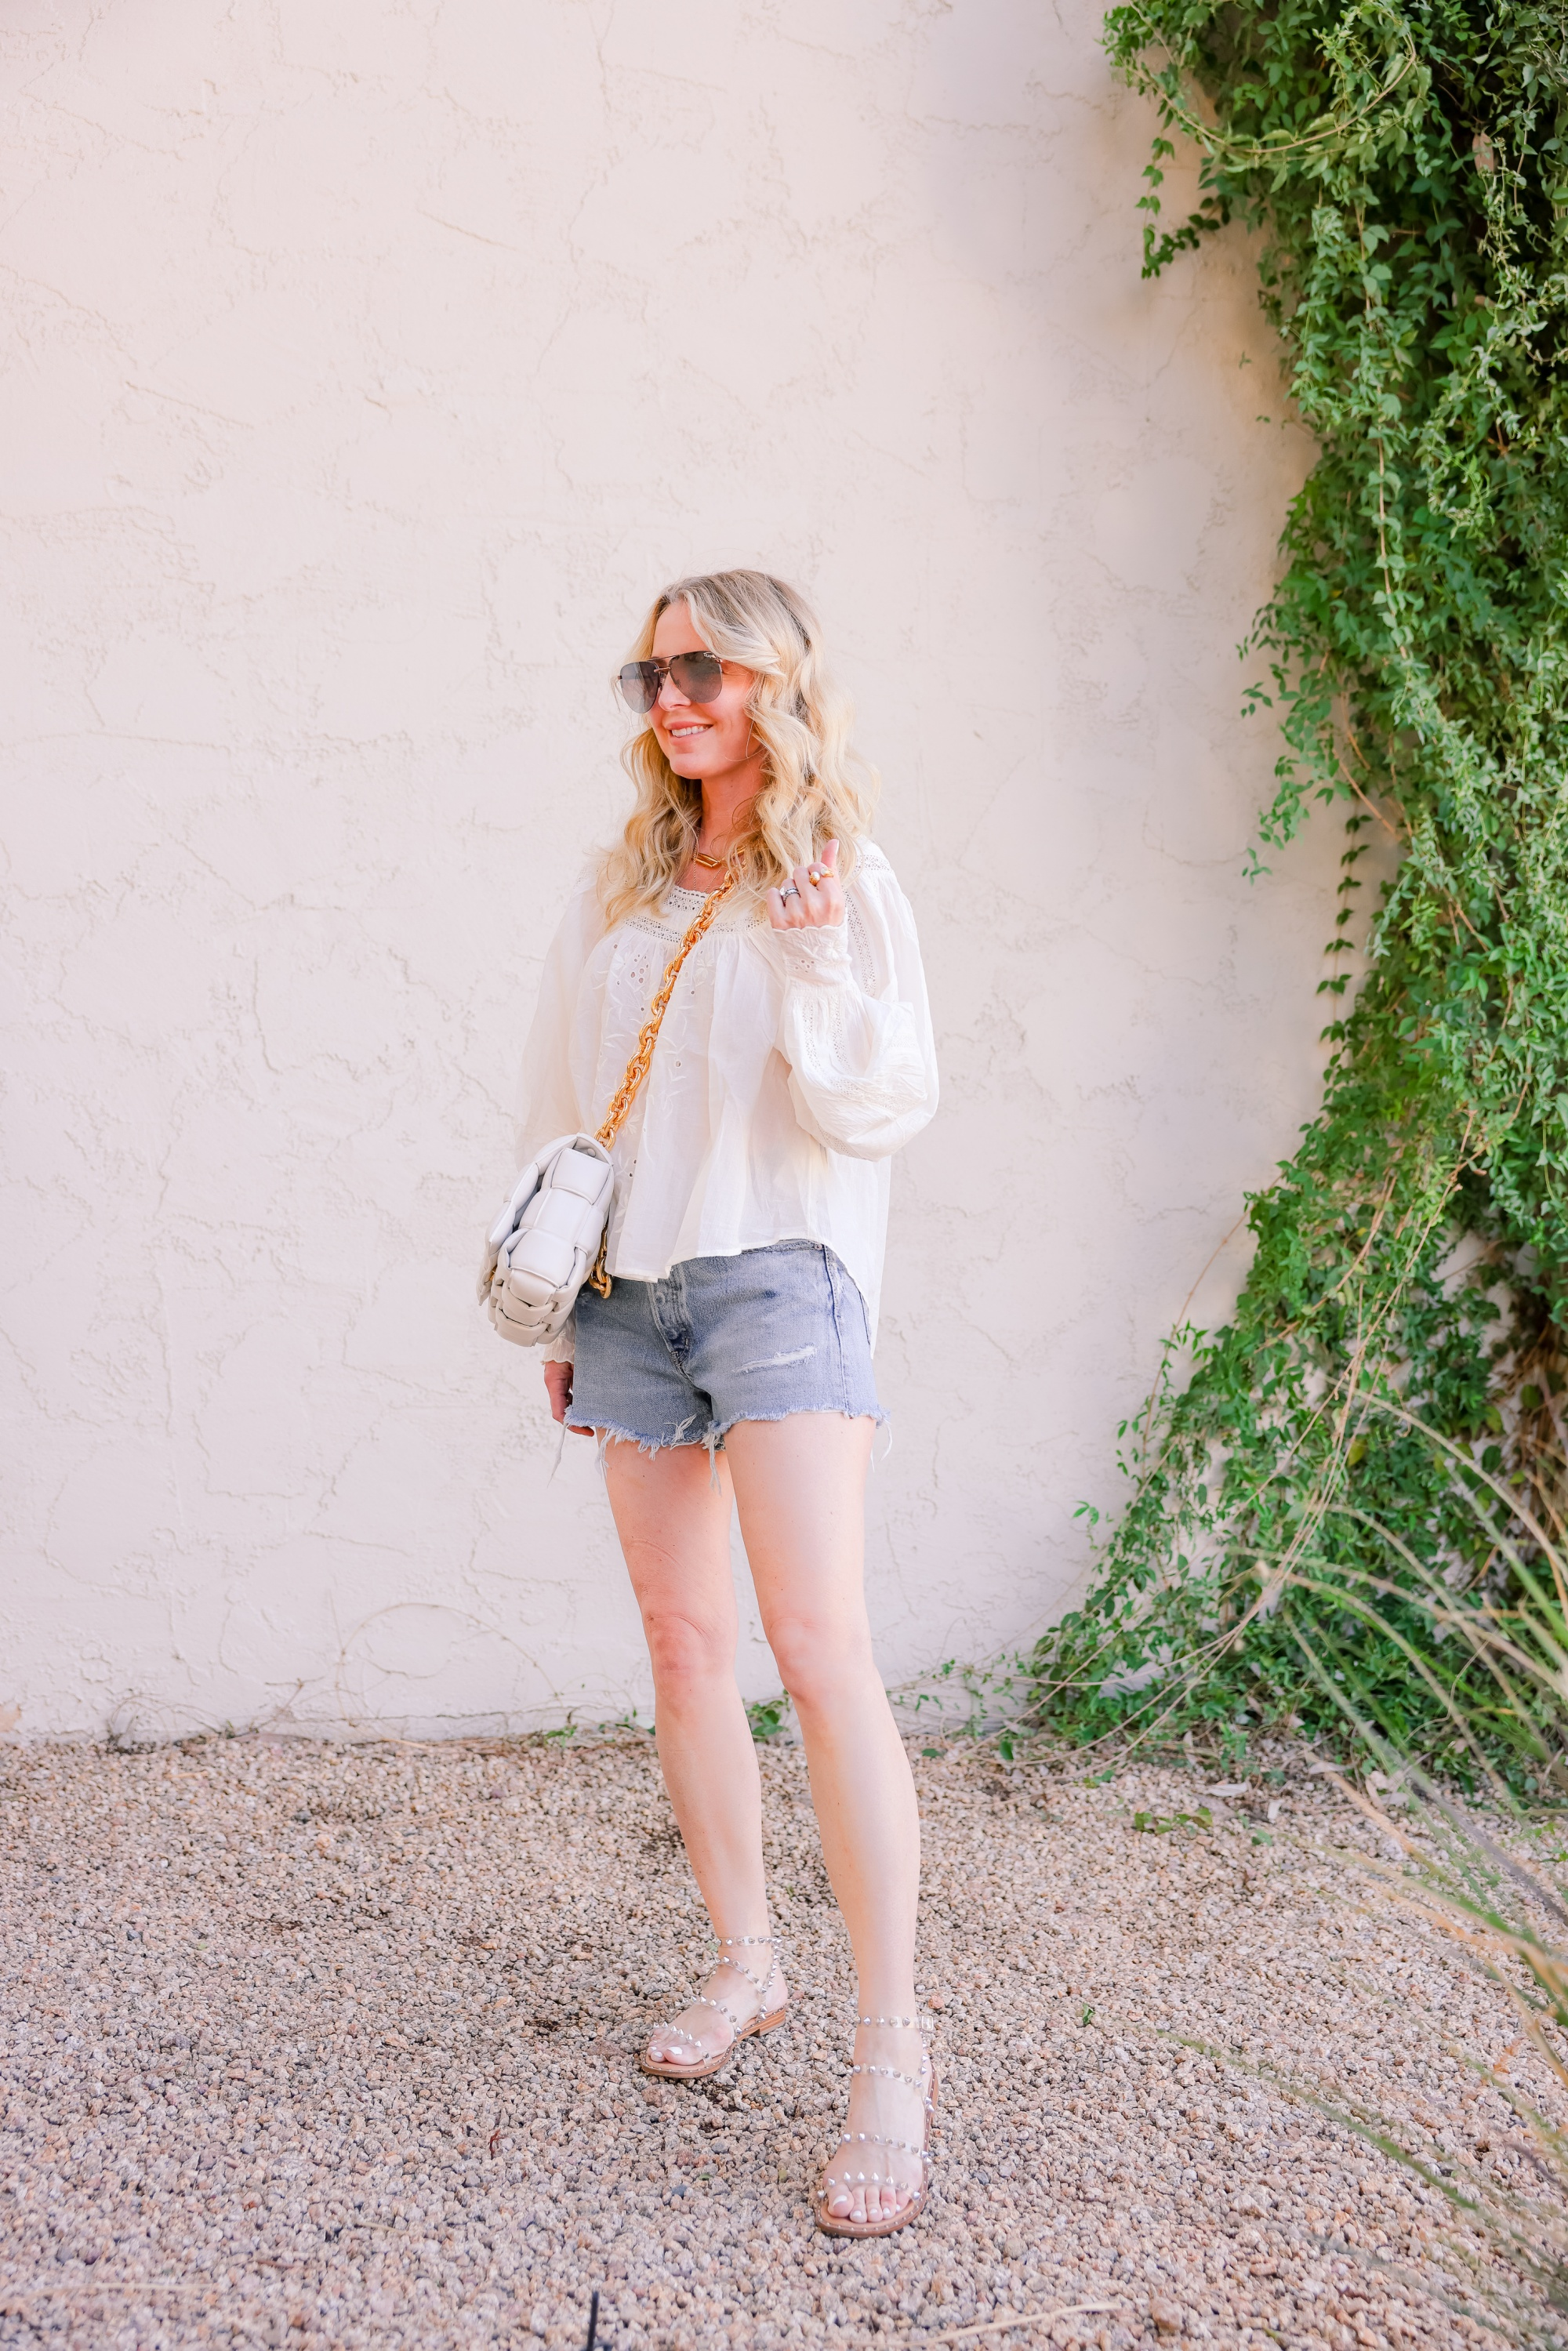 Moussy Vintage denim shorts, Erin Busbee, jean shorts, how should denim shorts fit, shorts for middle aged woman, how to wear shorts over 40, length of shorts womens, shorts inseam guide womens, are my shorts too short, jean shorts outfit, cute shorts, mom shorts outfit, ways to wear shorts over 40